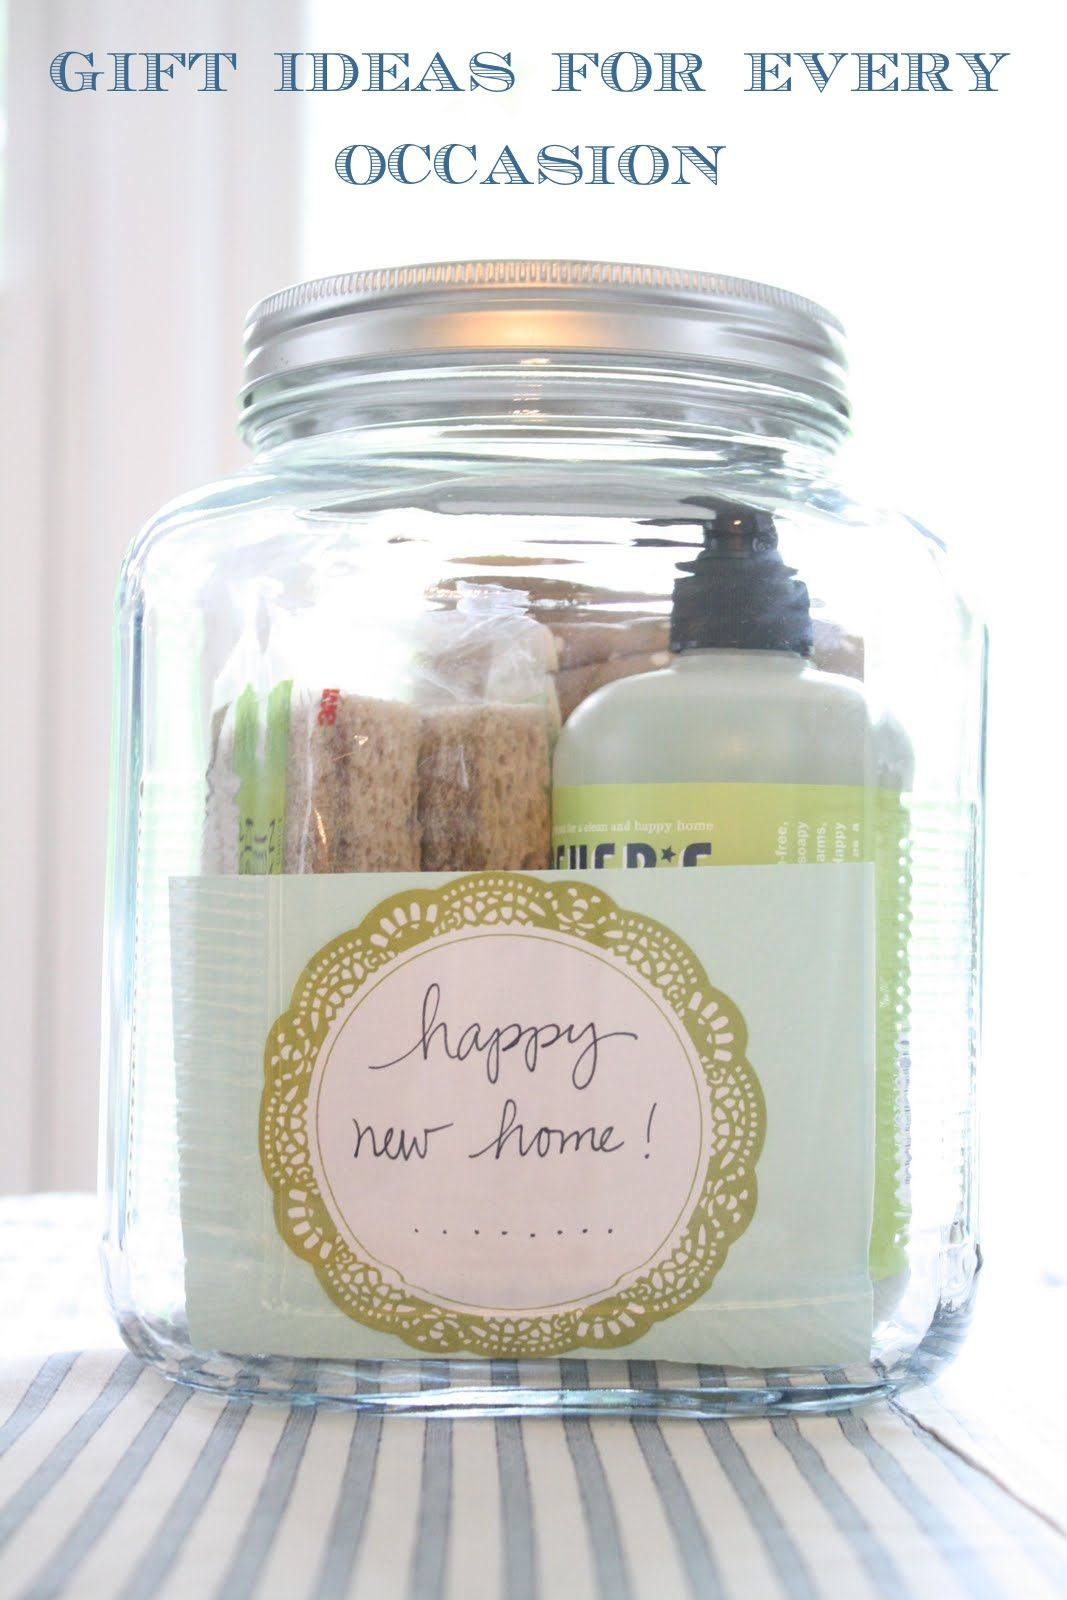 Creative gift ideas for every occasion gift ideas pinterest